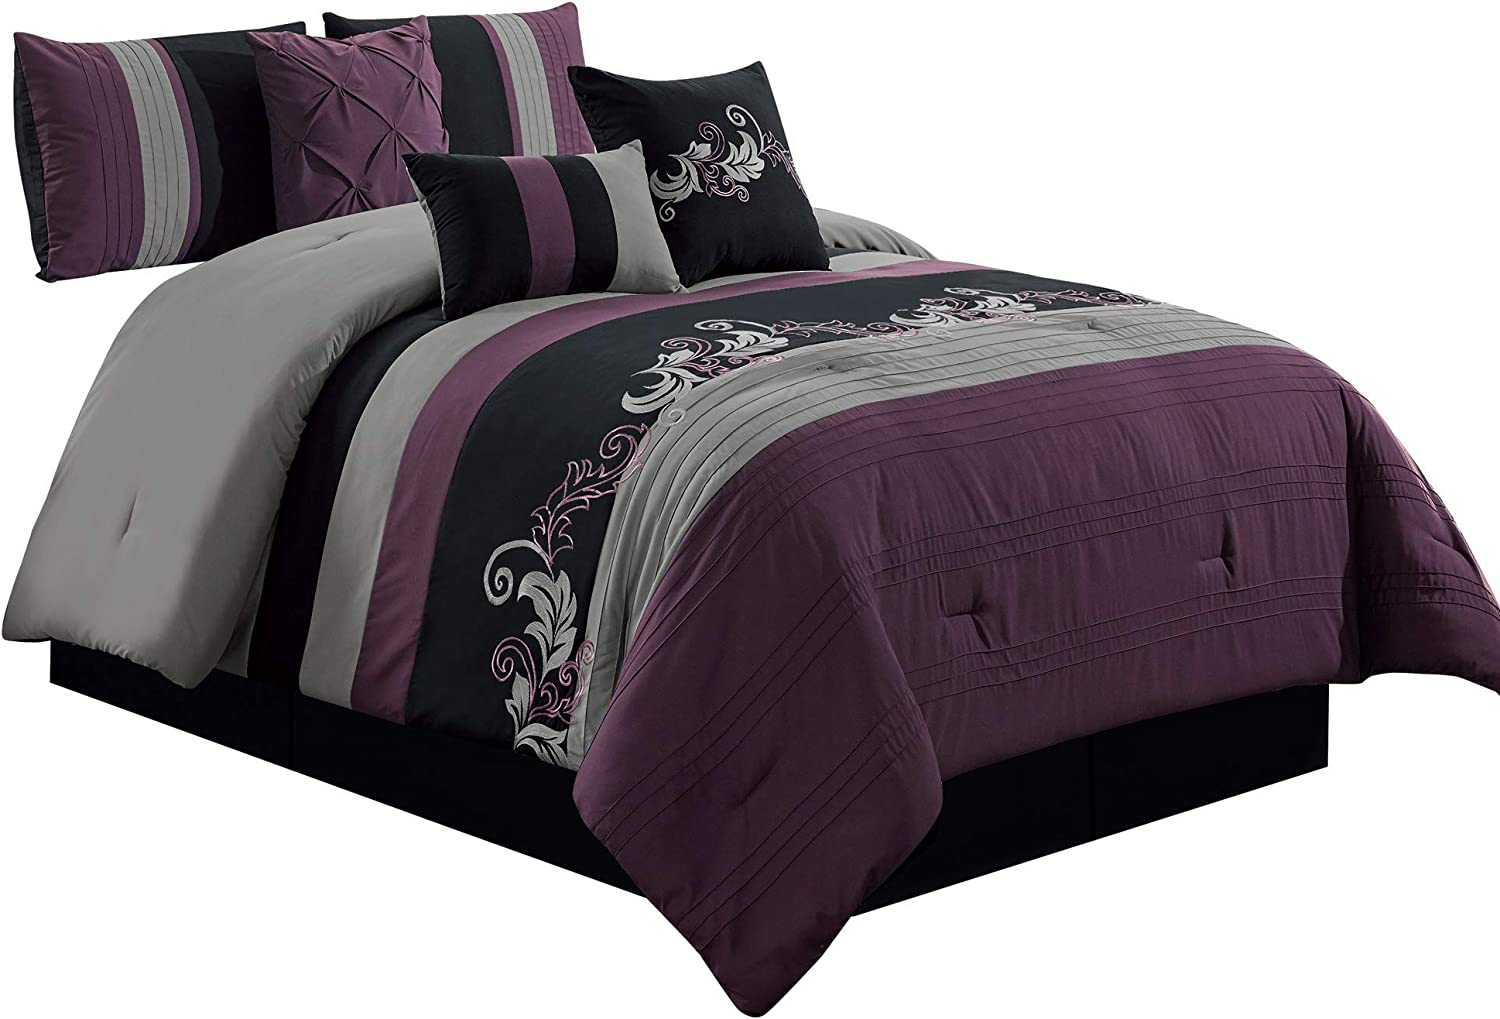 Chezmoi Collection Napa 7-Piece Luxury Leaves Scroll Embroidery Bedding Comforter Set (Queen, Purple/Gray/Black)